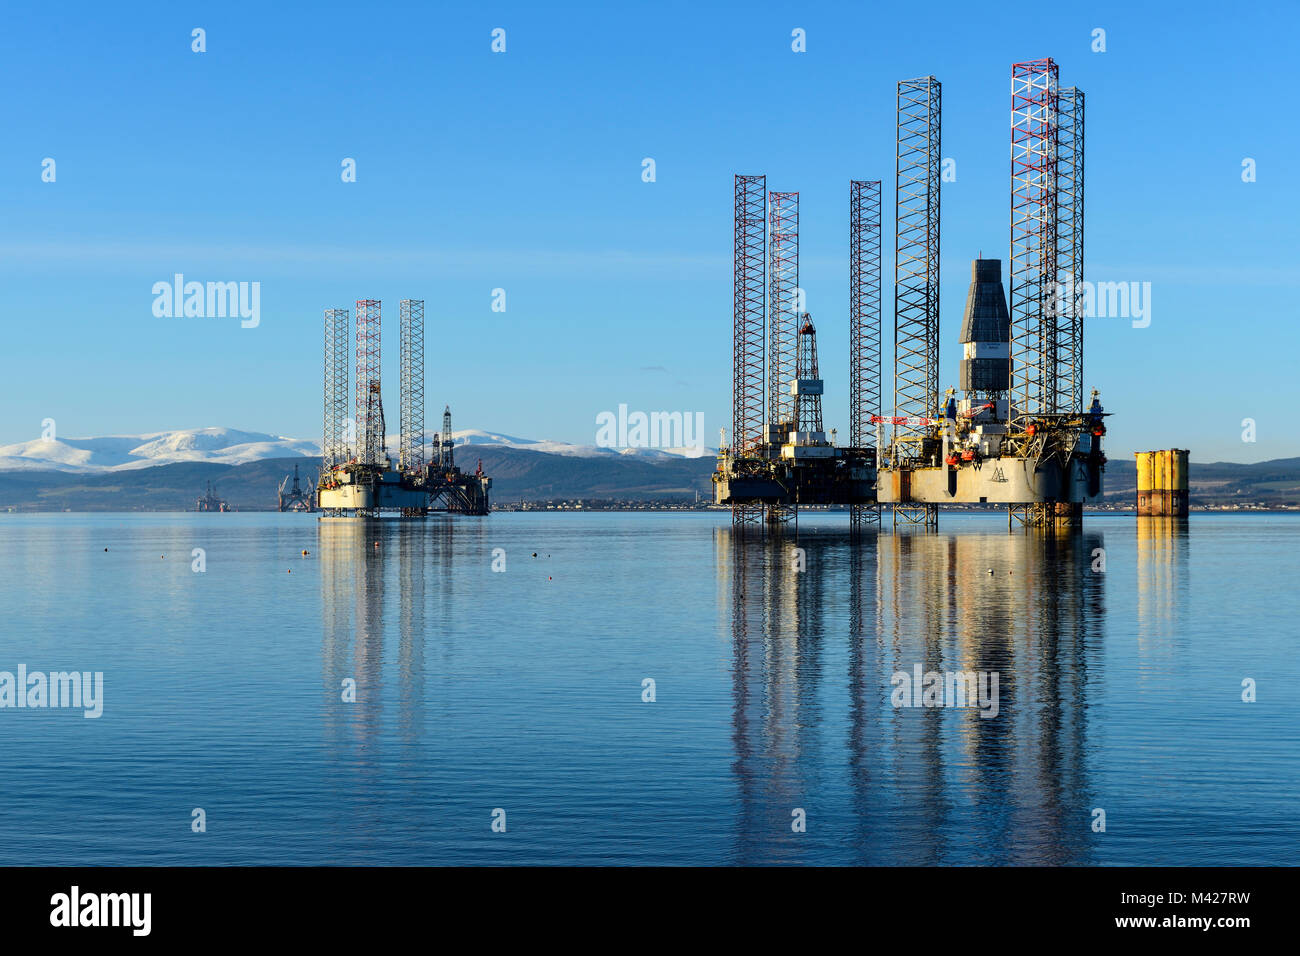 Oil rigs / drilling platforms moored in Cromarty Firth viewed from town of Cromarty on the Black Isle in Ross & Cromarty, Highland Region, Scotland Stock Photo